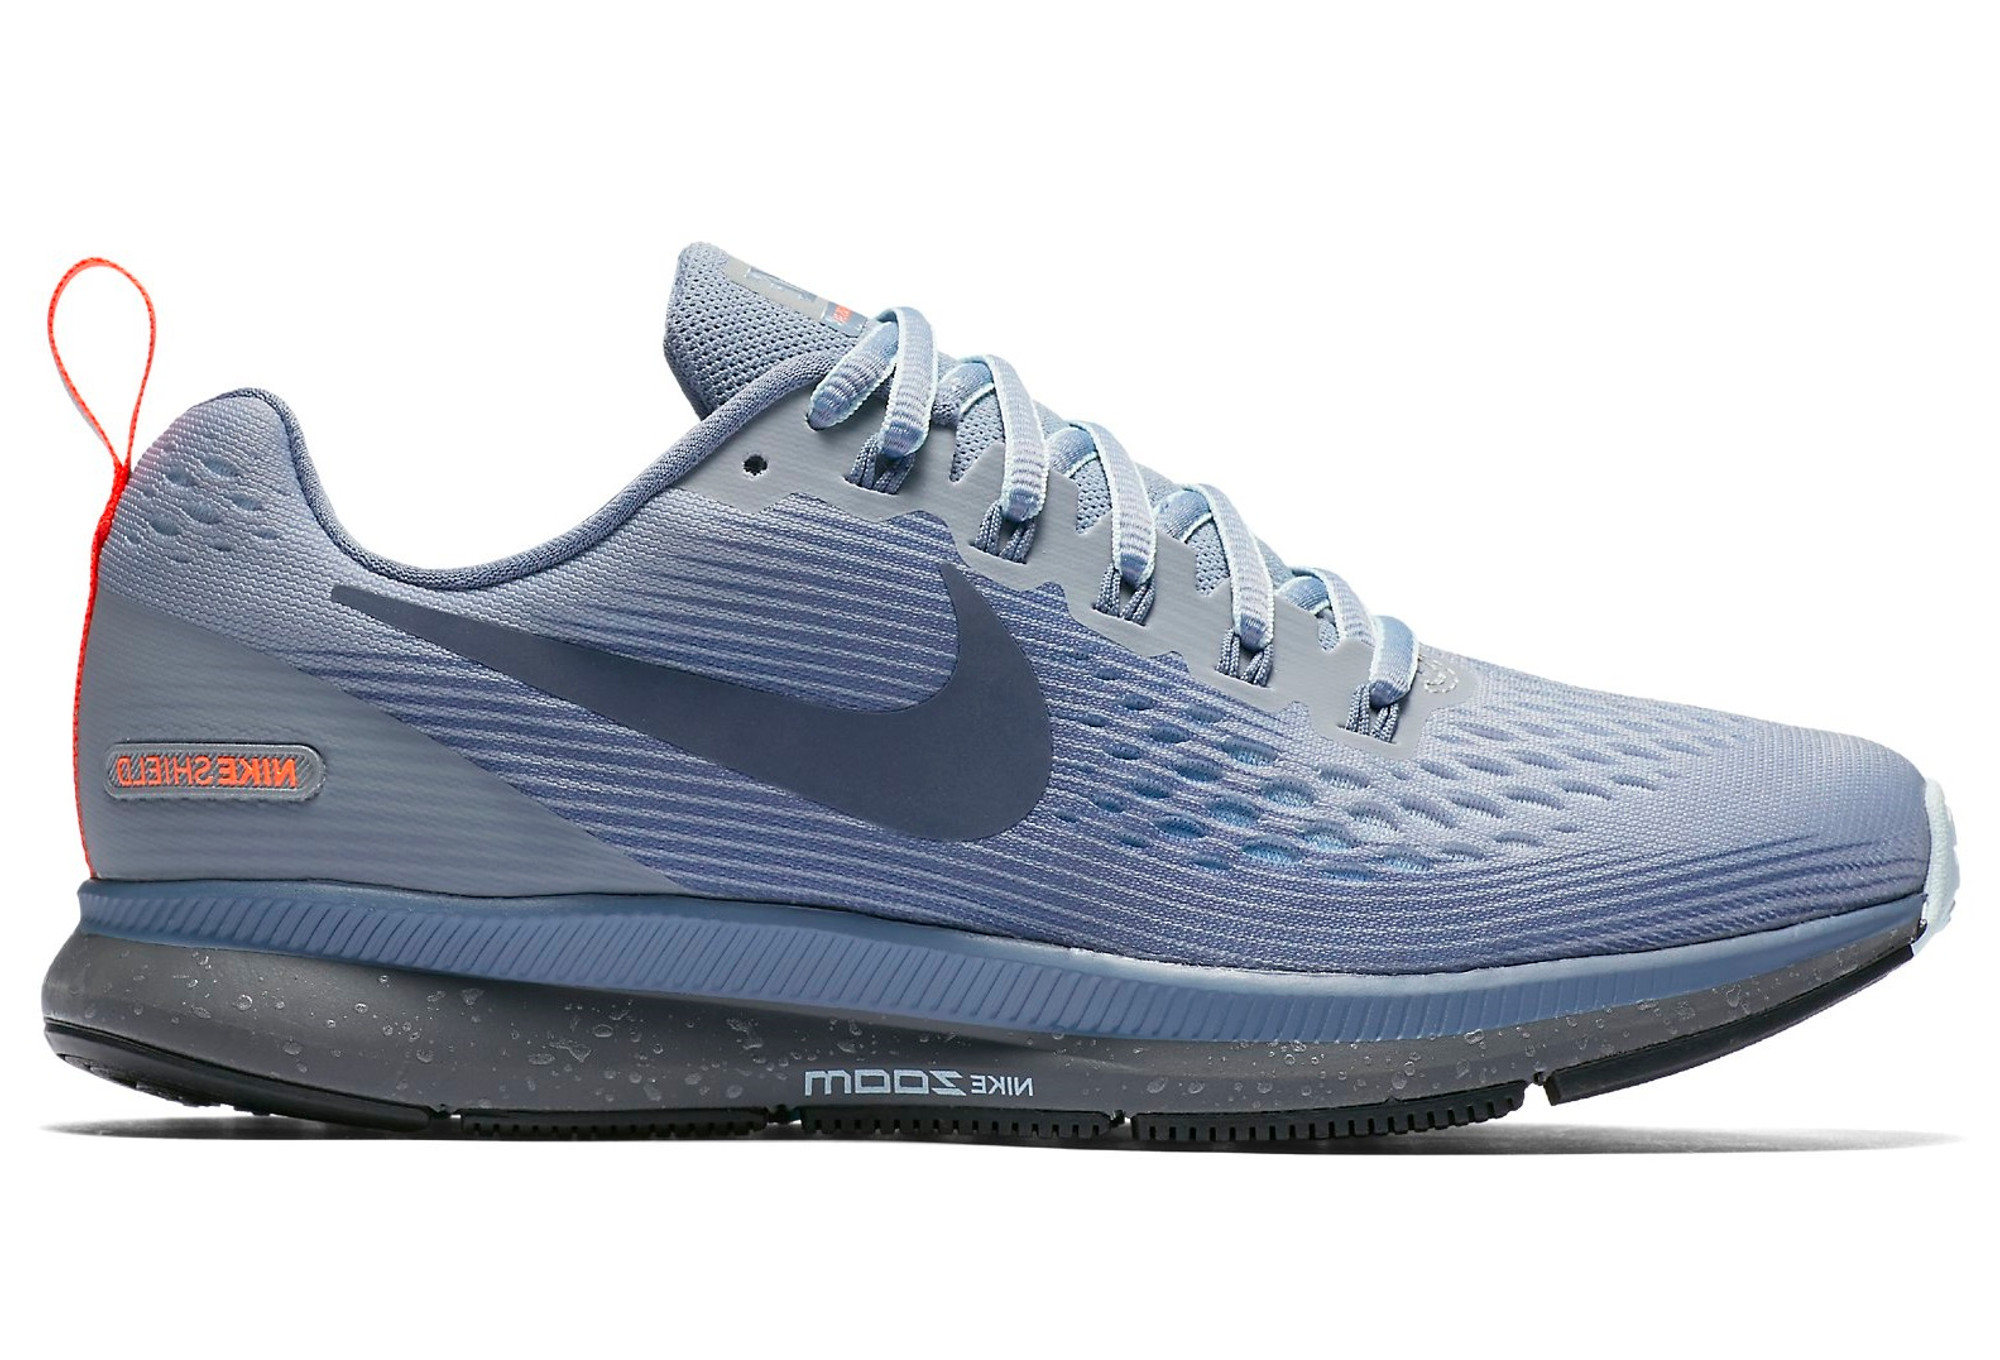 fa7be9b7dae Nike Air Zoom Pegasus 34 Shield Grey Blue Women